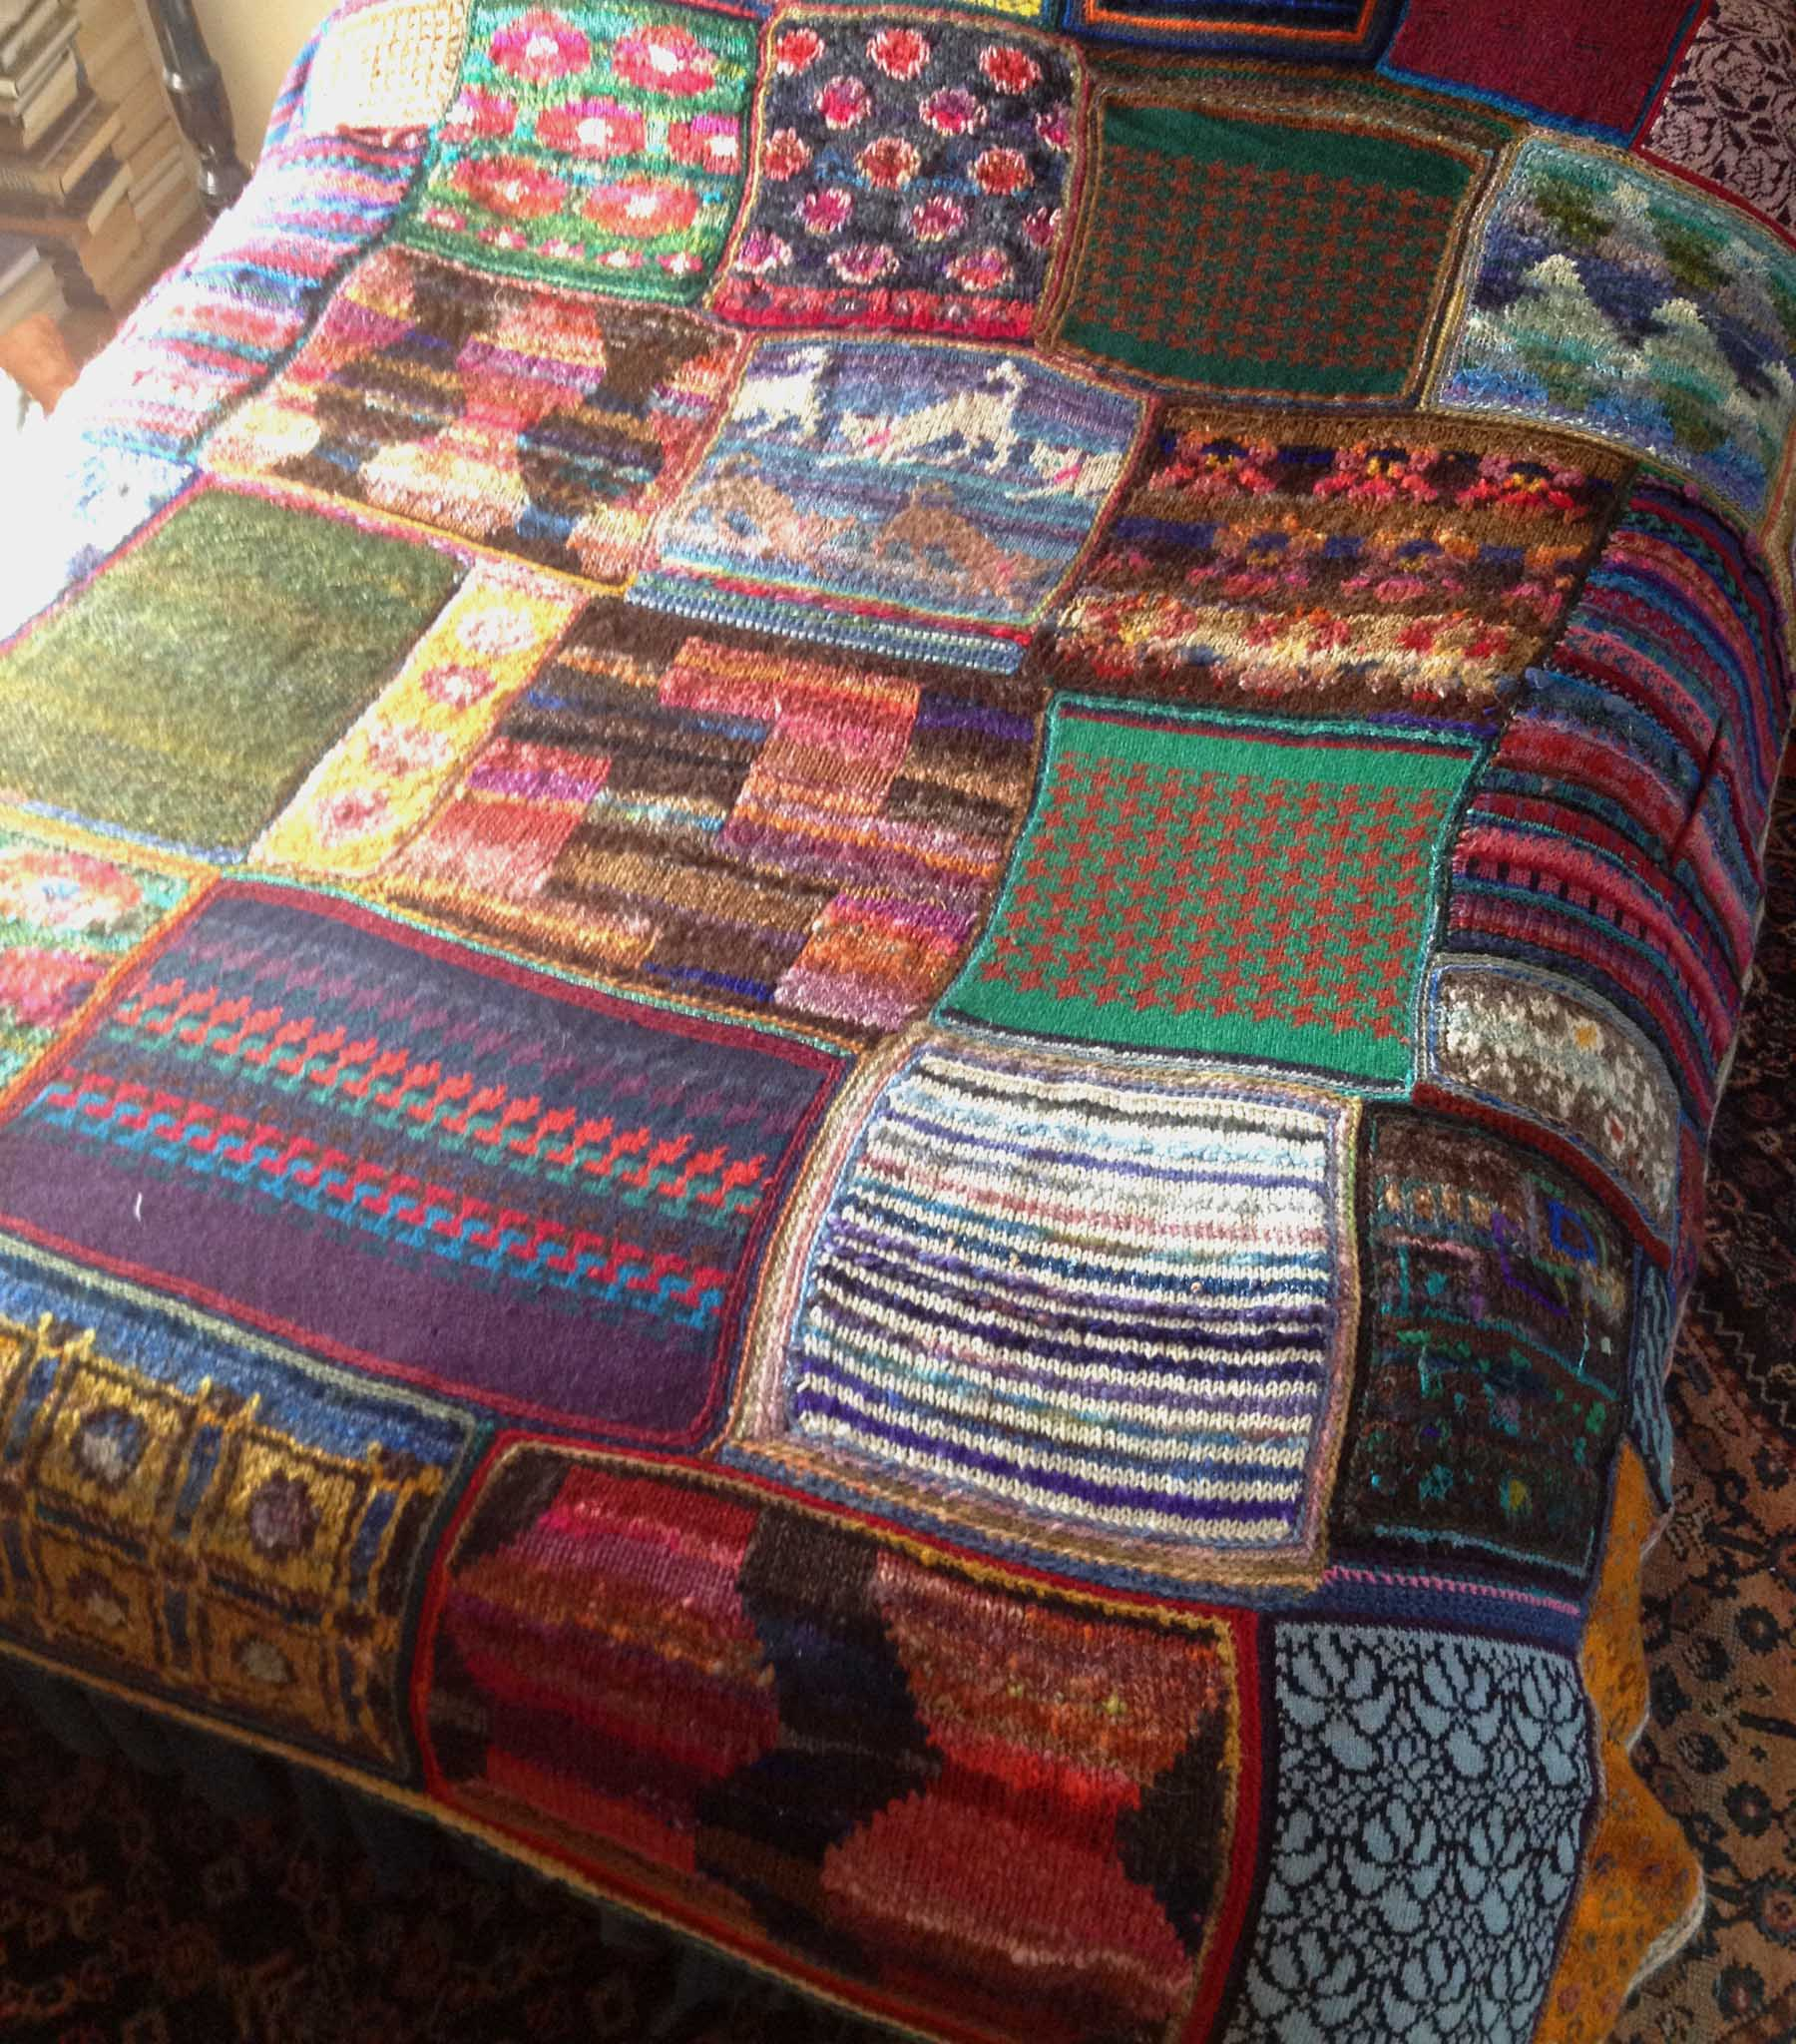 Knitting Patterns Blankets Patchwork : Image Gallery knitting a patchwork blanket